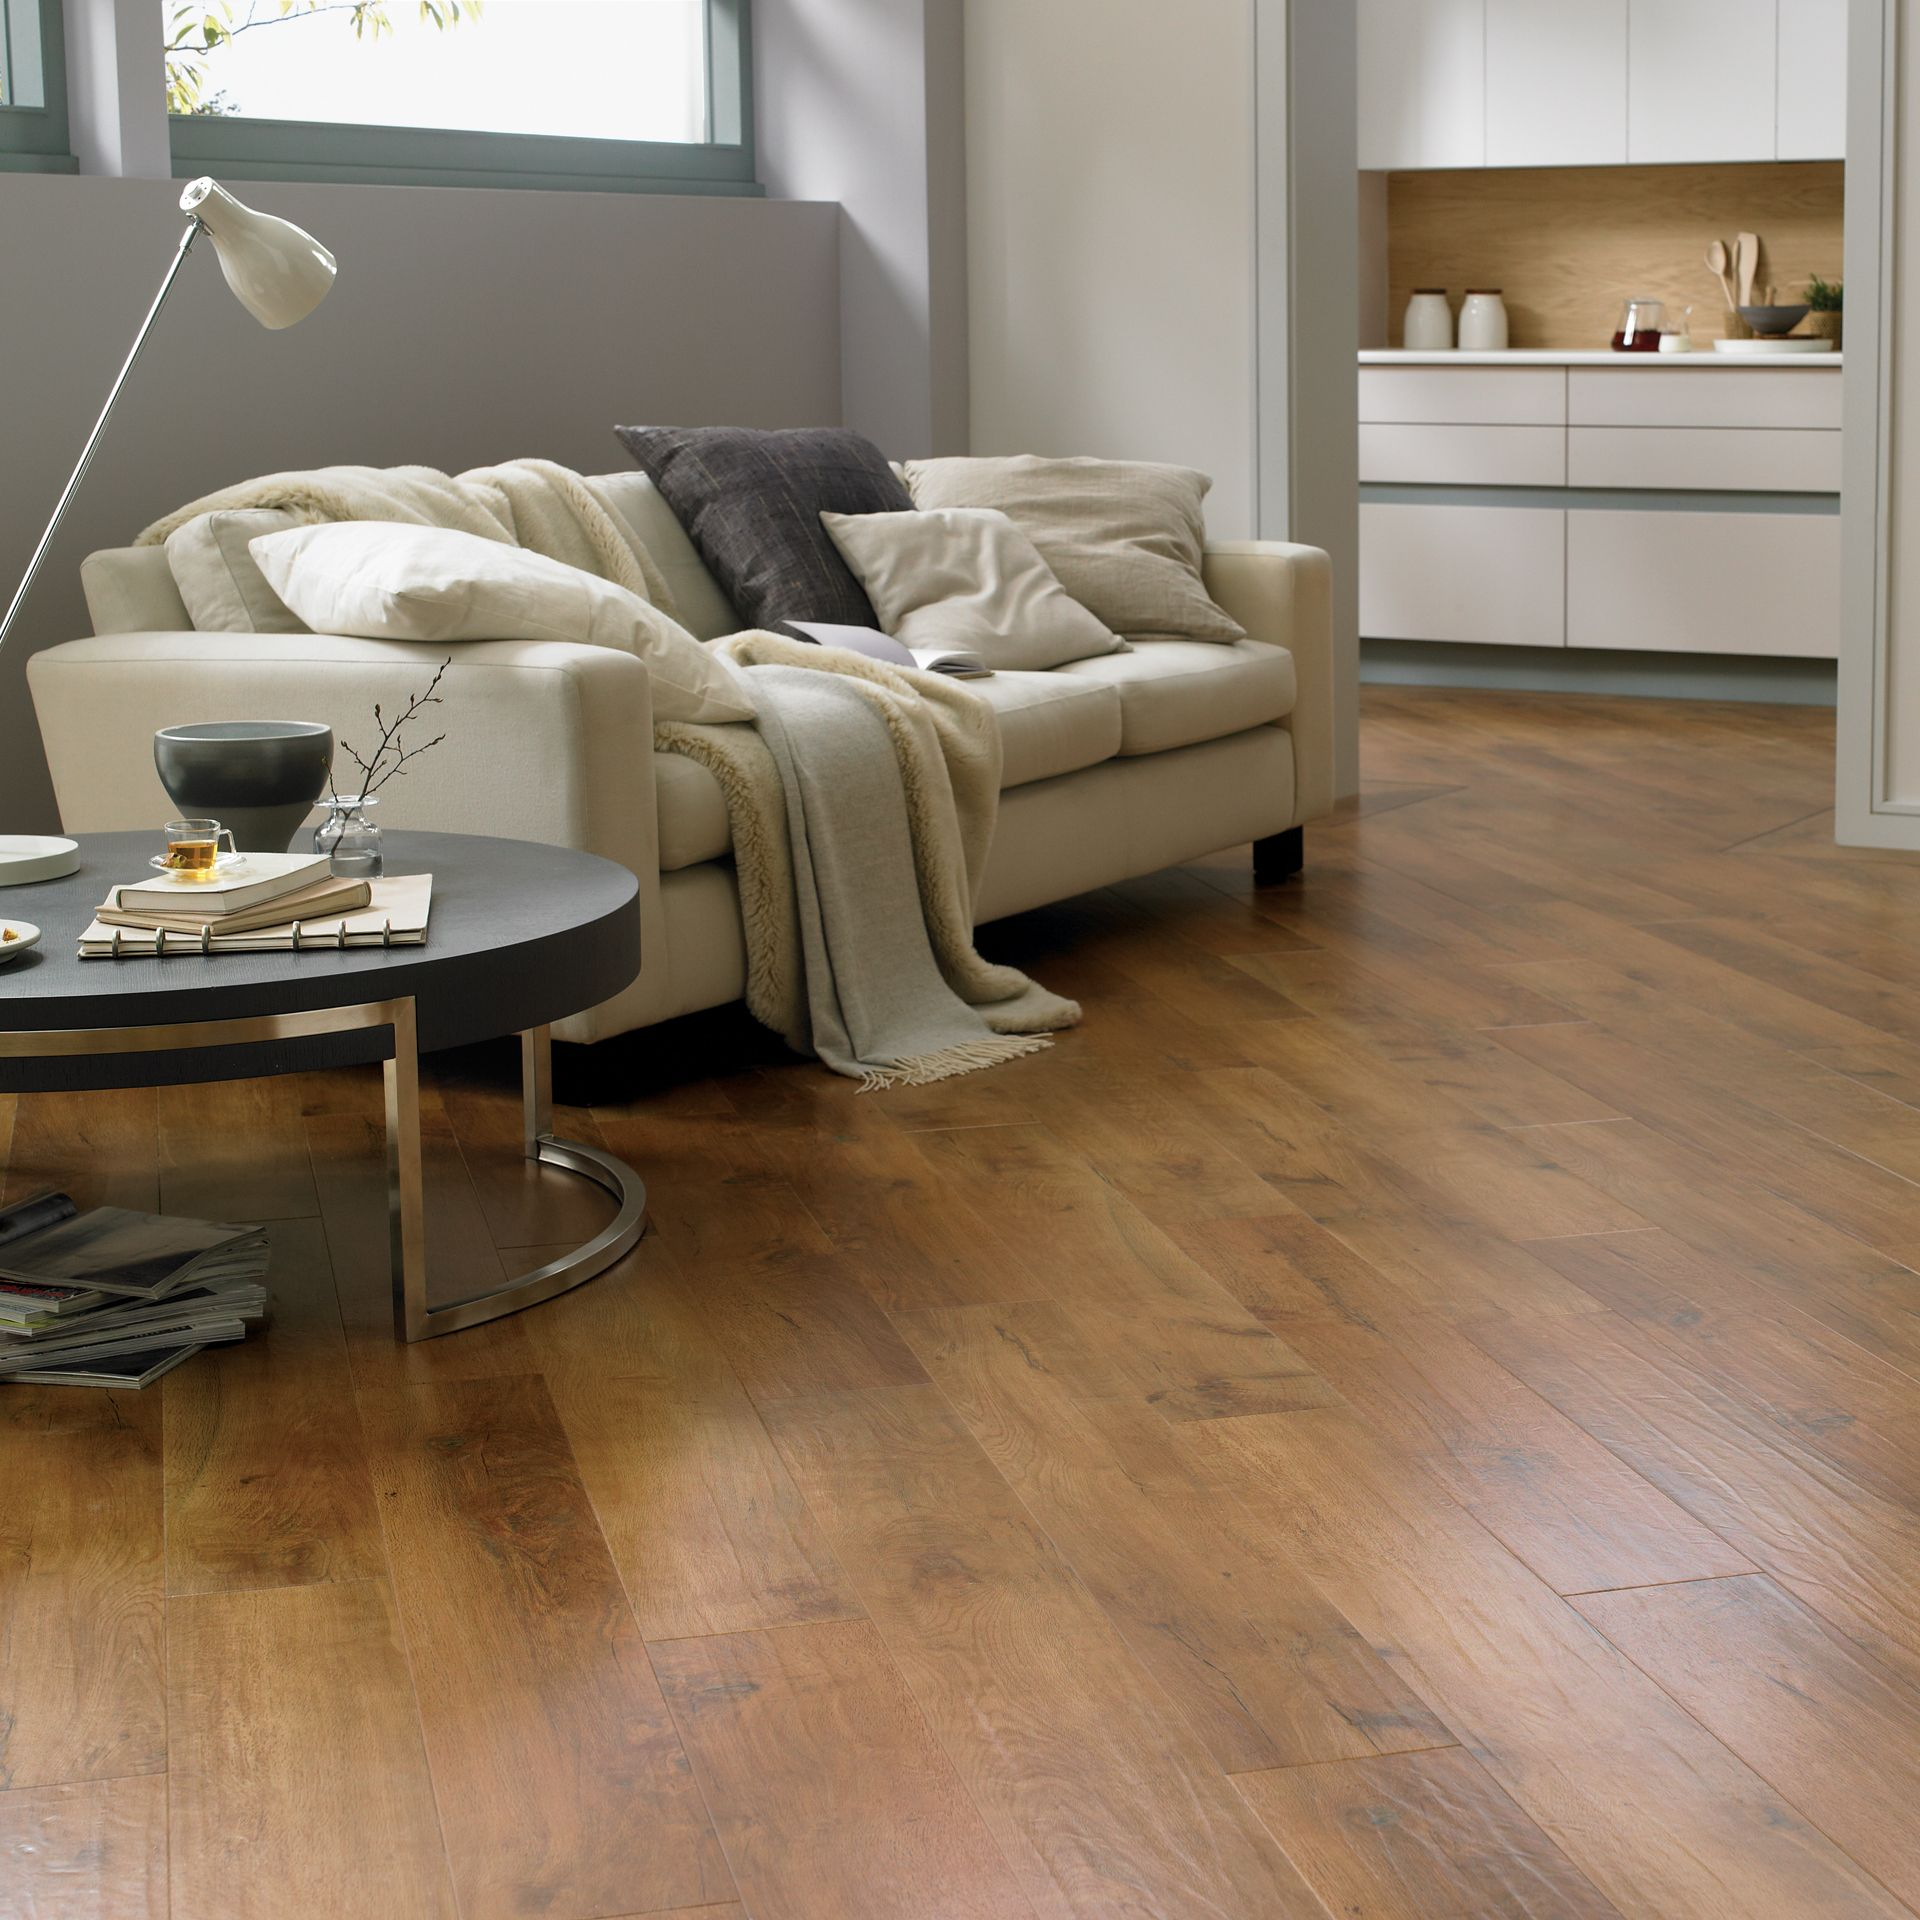 Natural Wood Effect Flooring Tiles and Planks Luxury